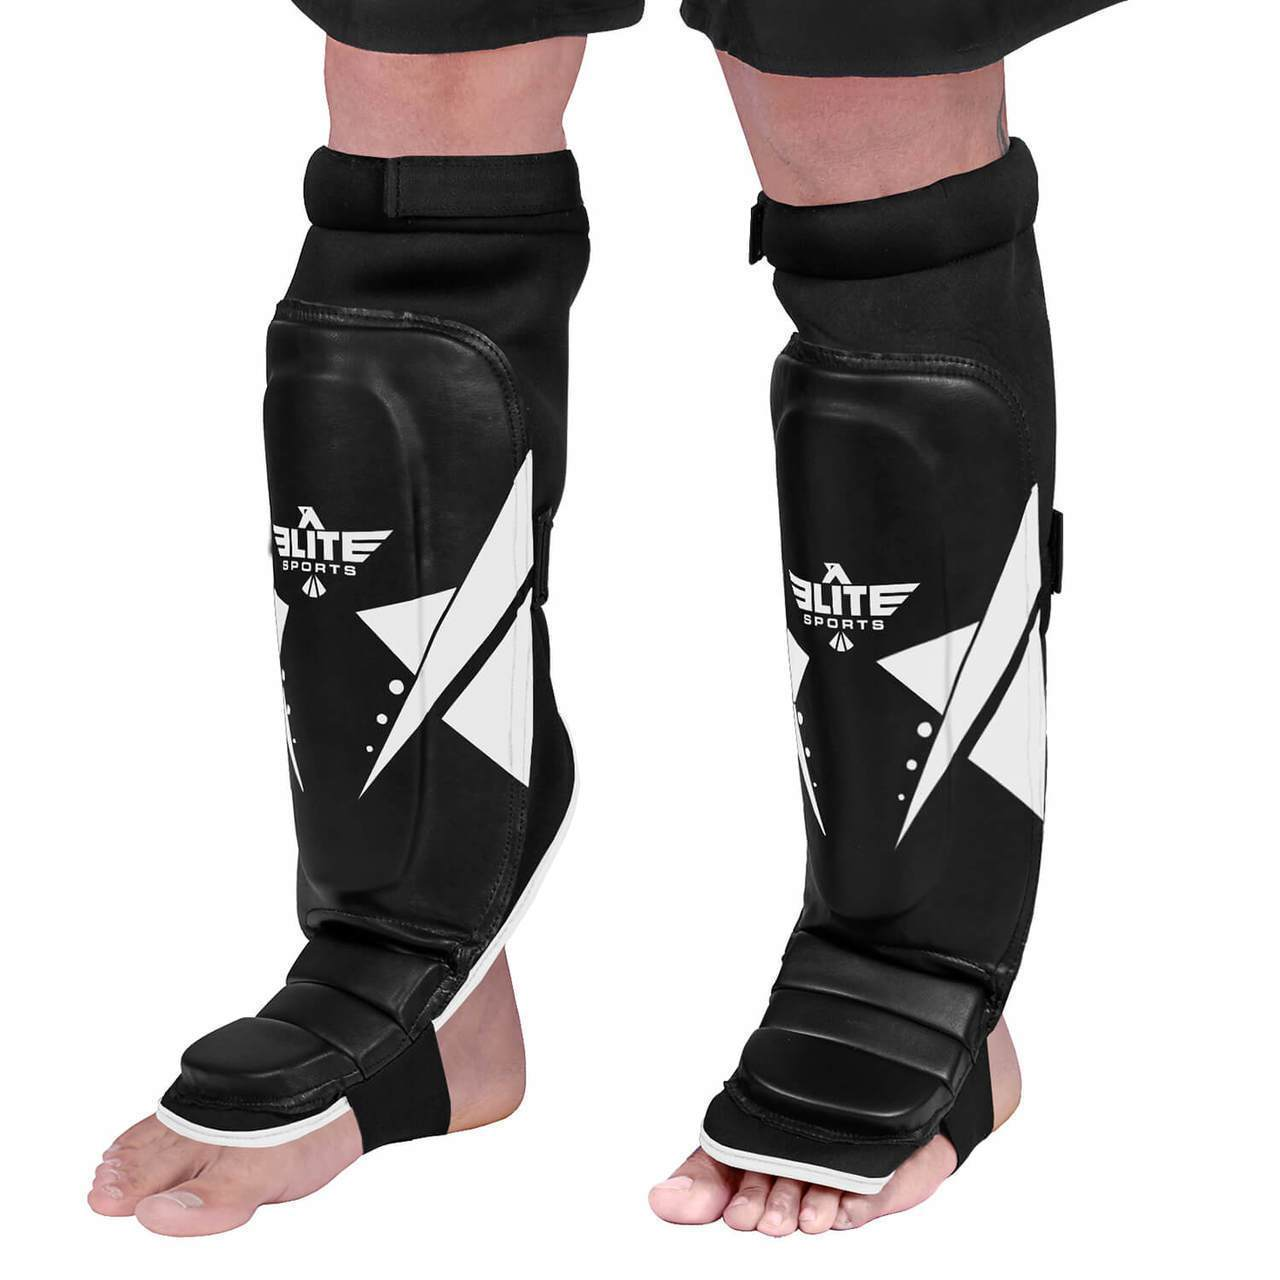 Load image into Gallery viewer, Elite Sports Star Series Black/White MMA Shin guards